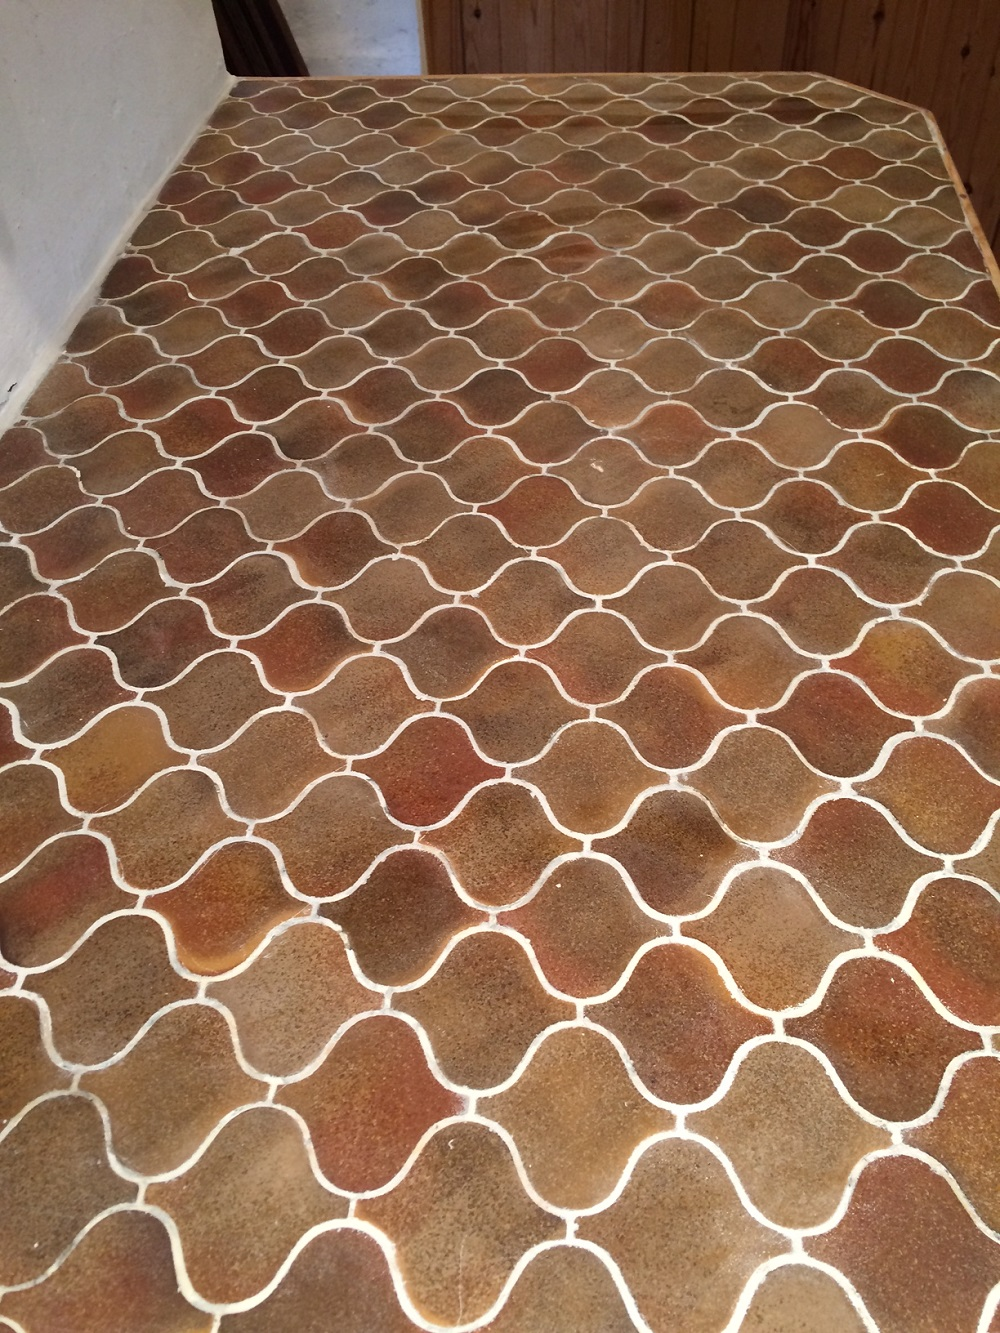 Mosaic tiled worktop after grout colouring